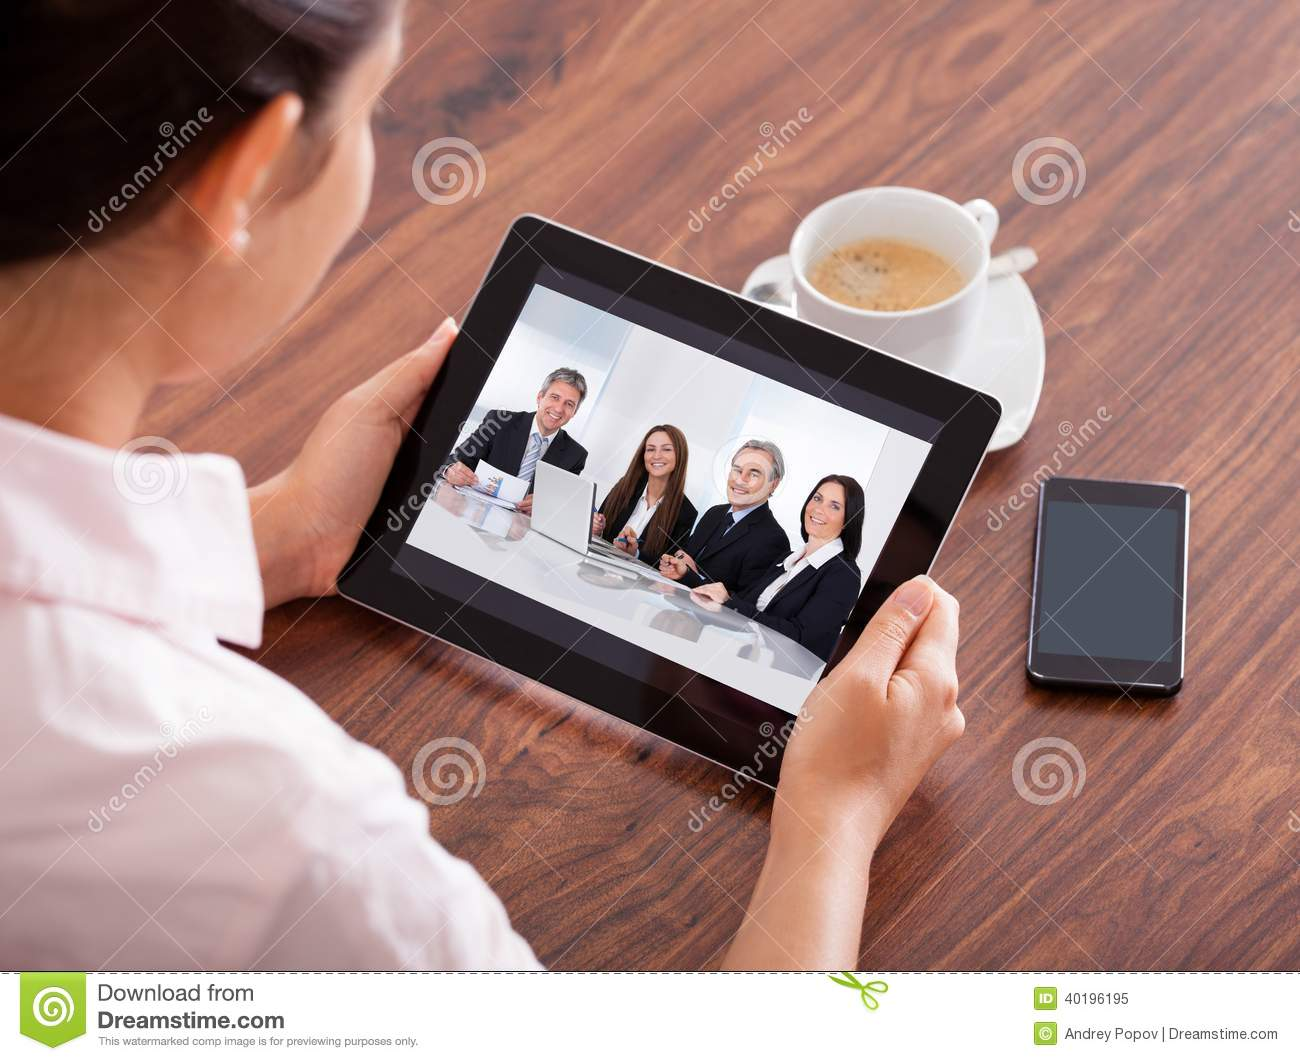 Woman video conferencing on digital table